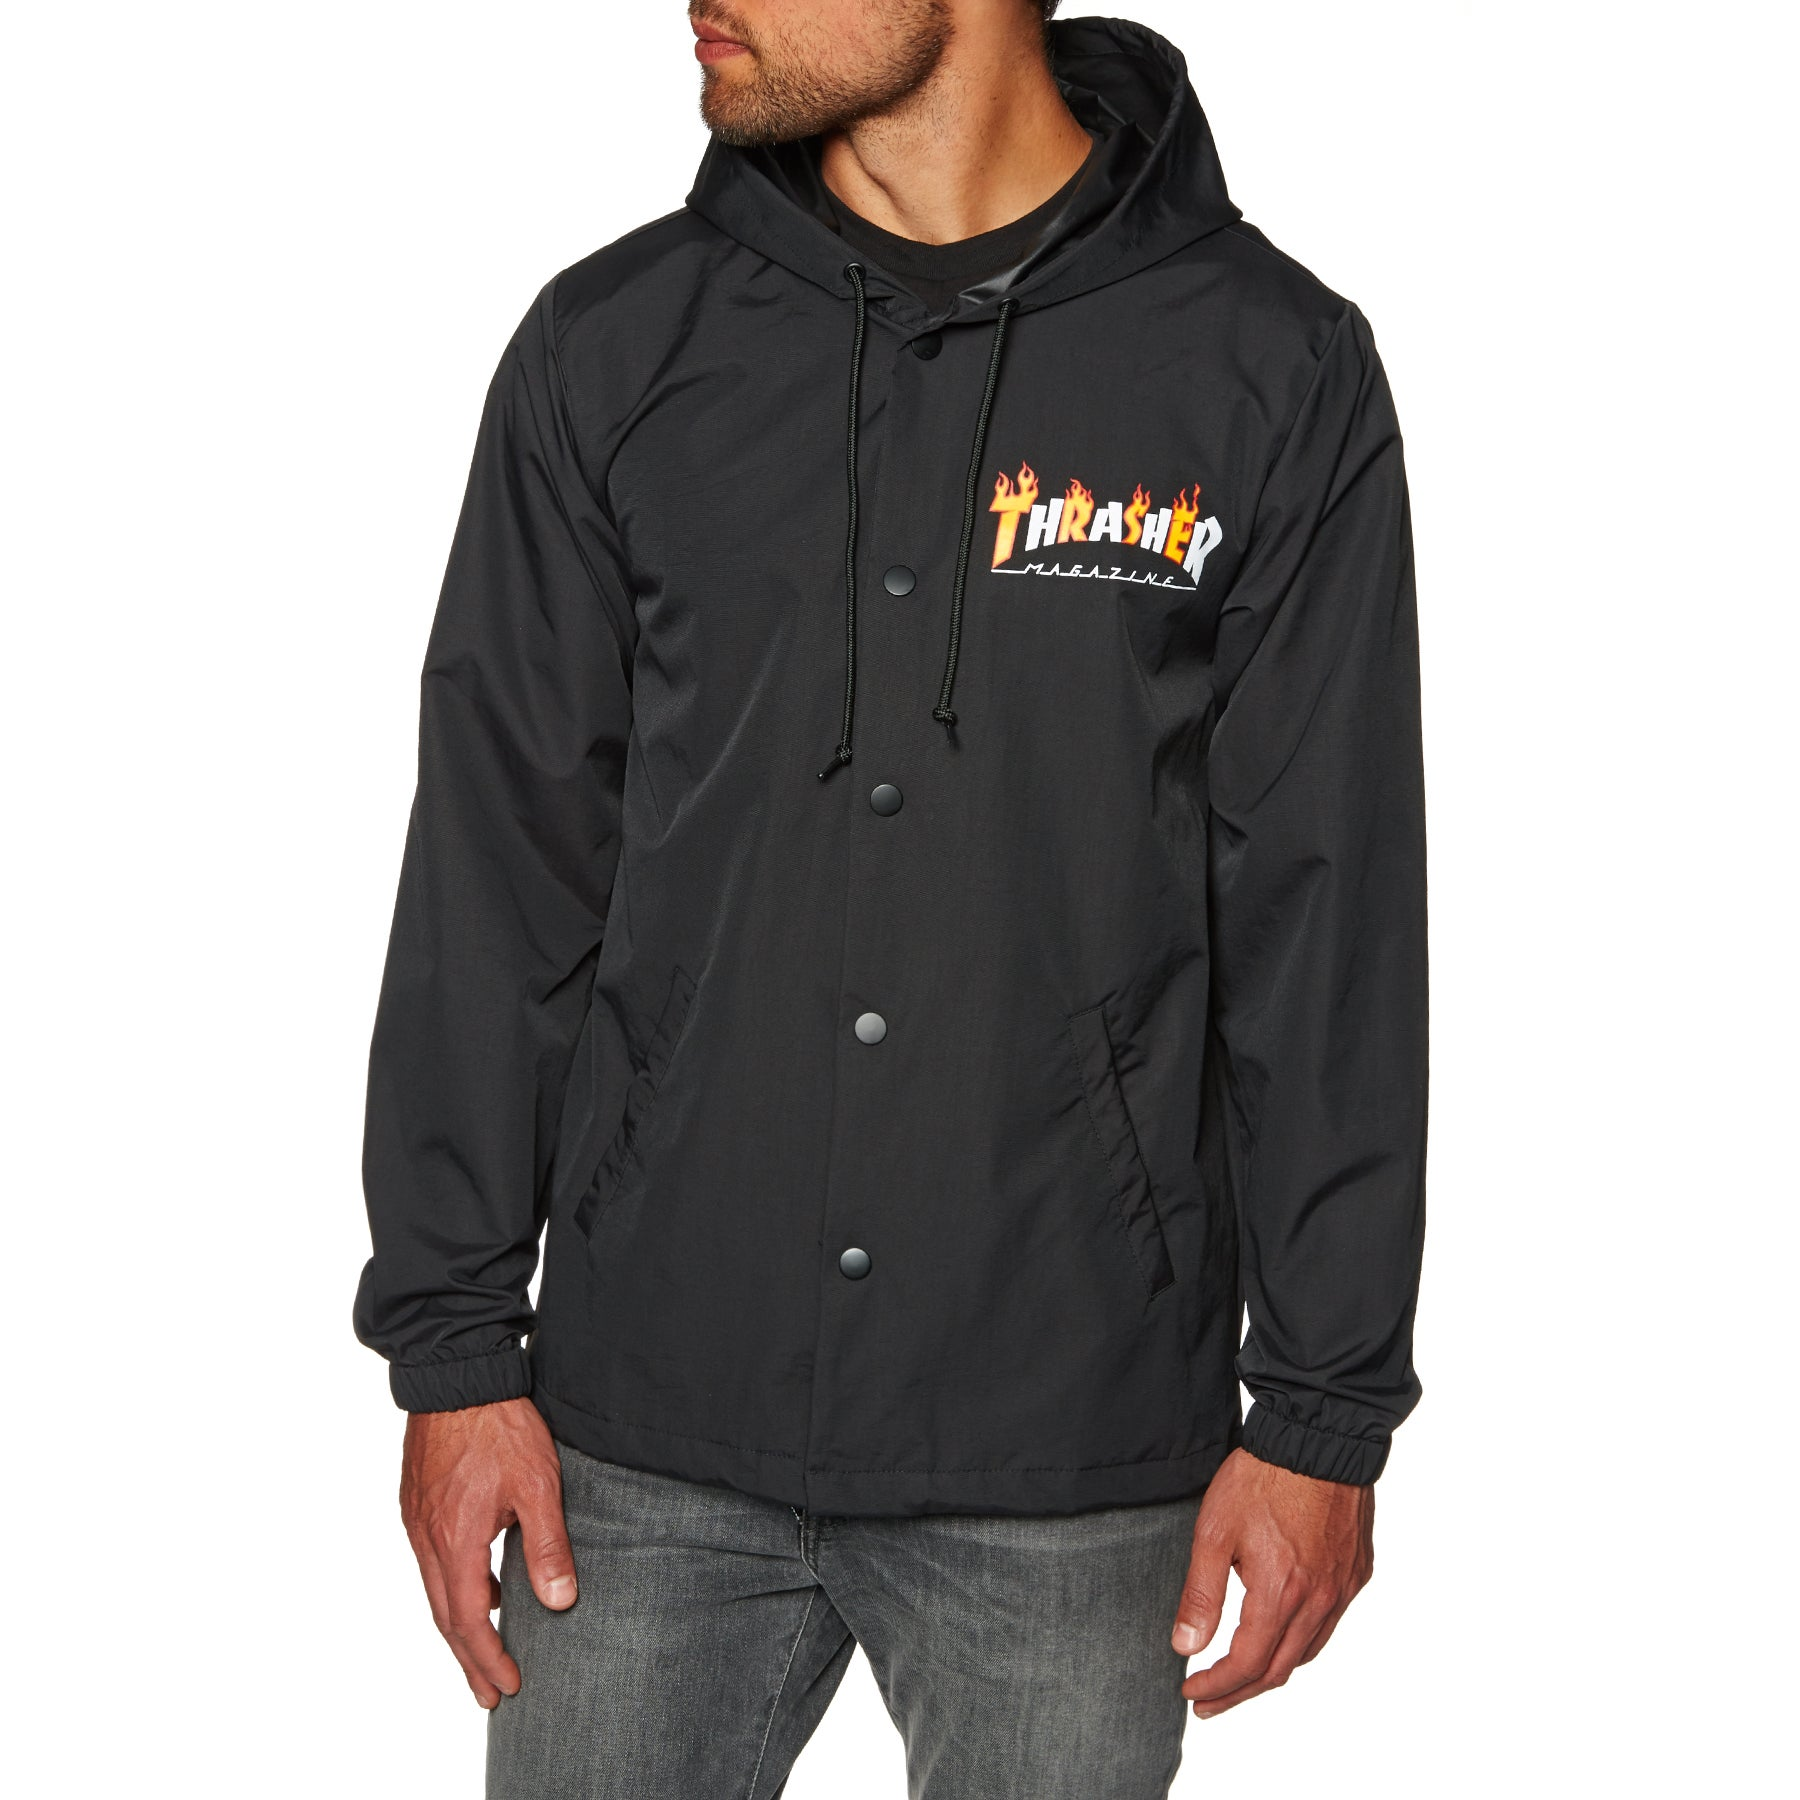 9704690d87bd Thrasher Flame Mag Coach Jacket - Free Delivery options on All ...